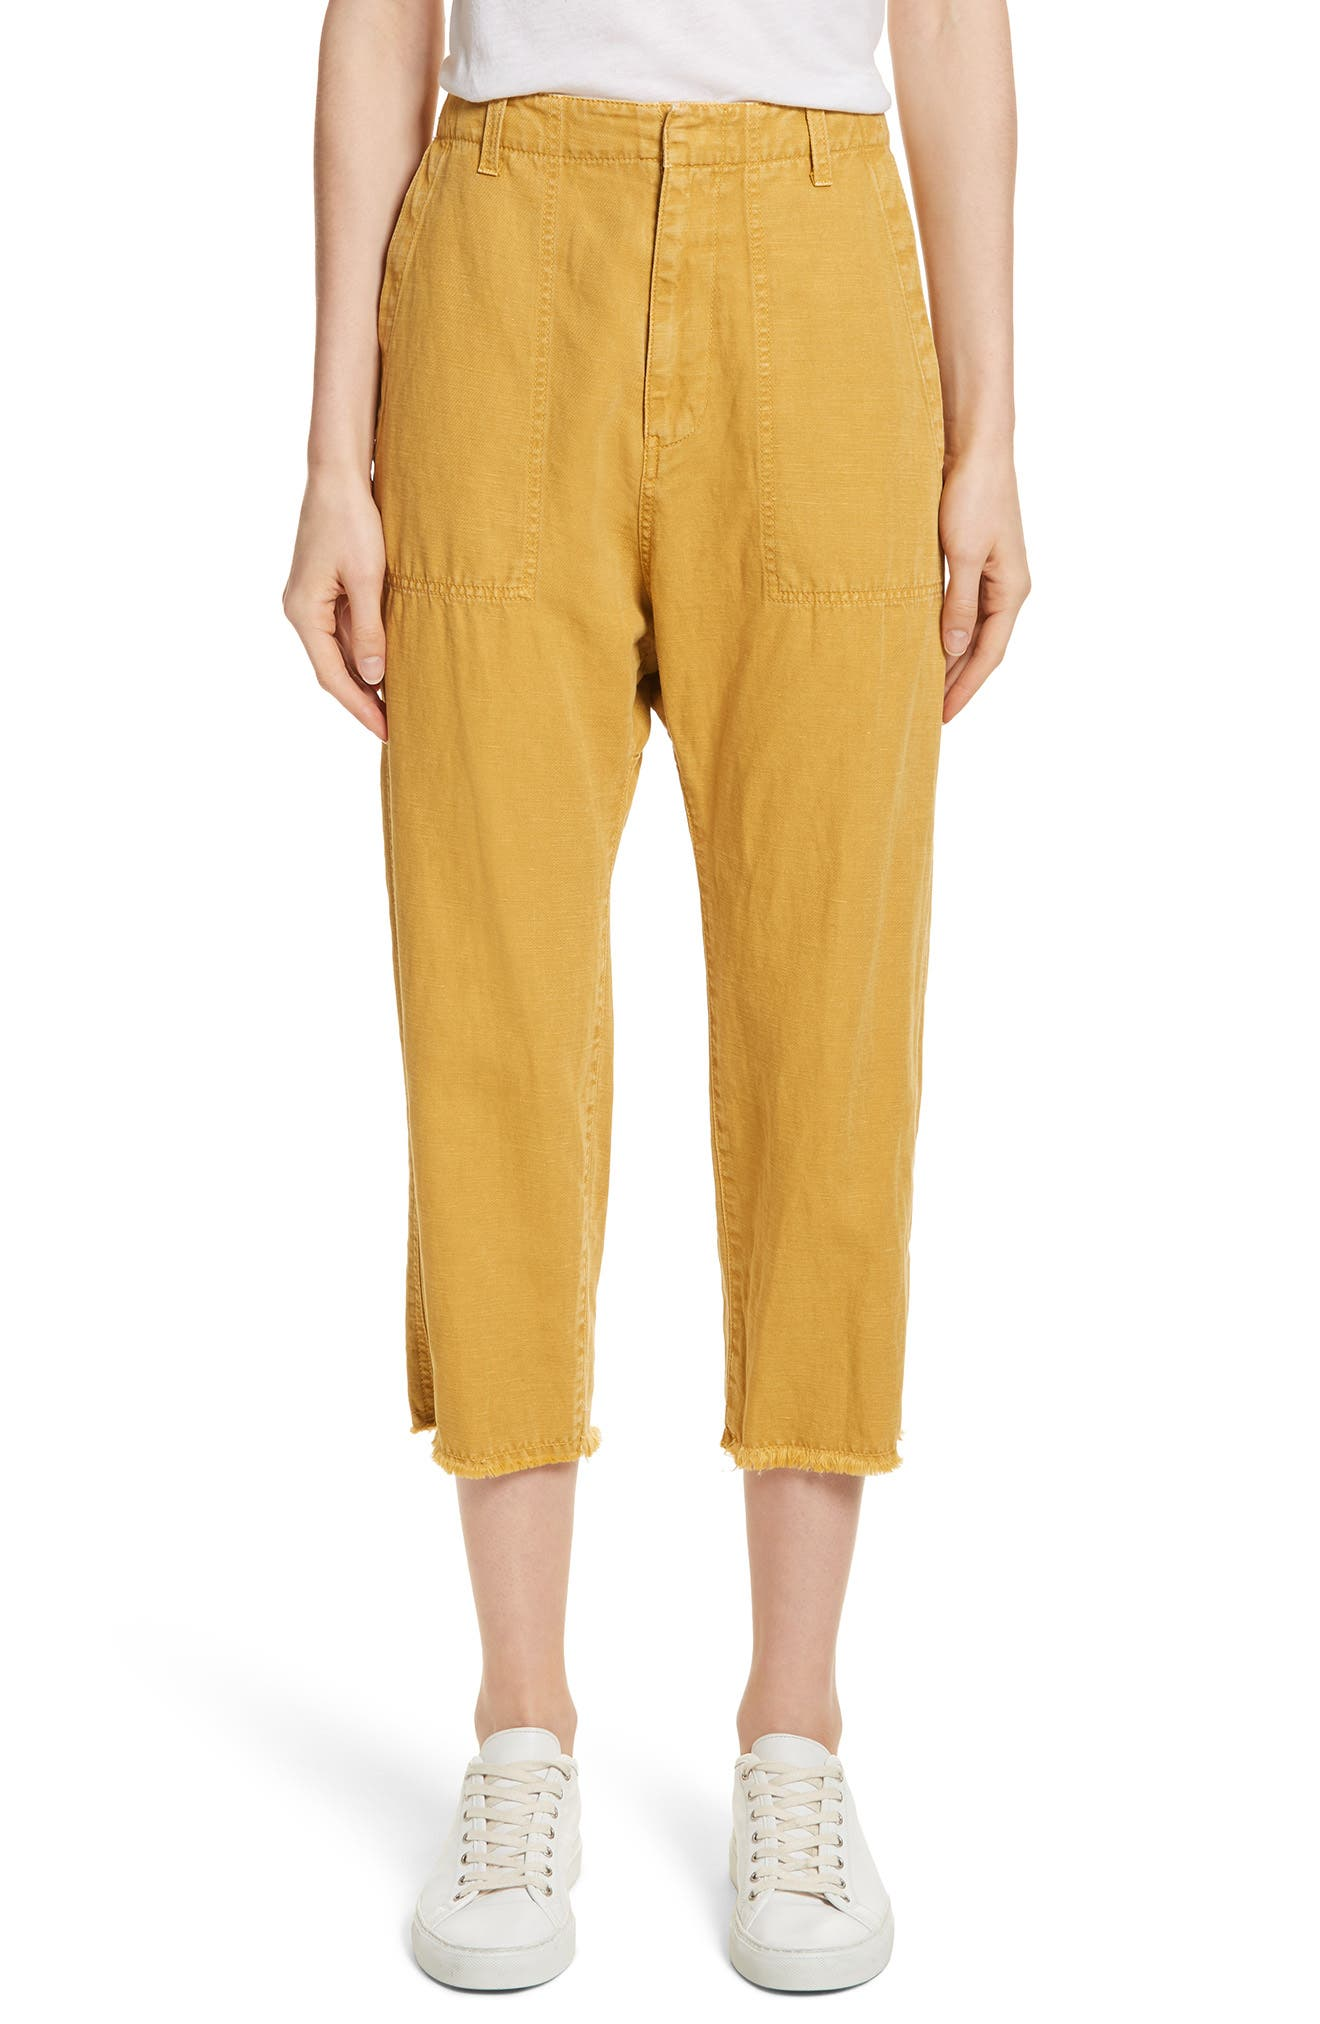 Nili Lotan Luna Cotton & Linen Twill Crop Pants